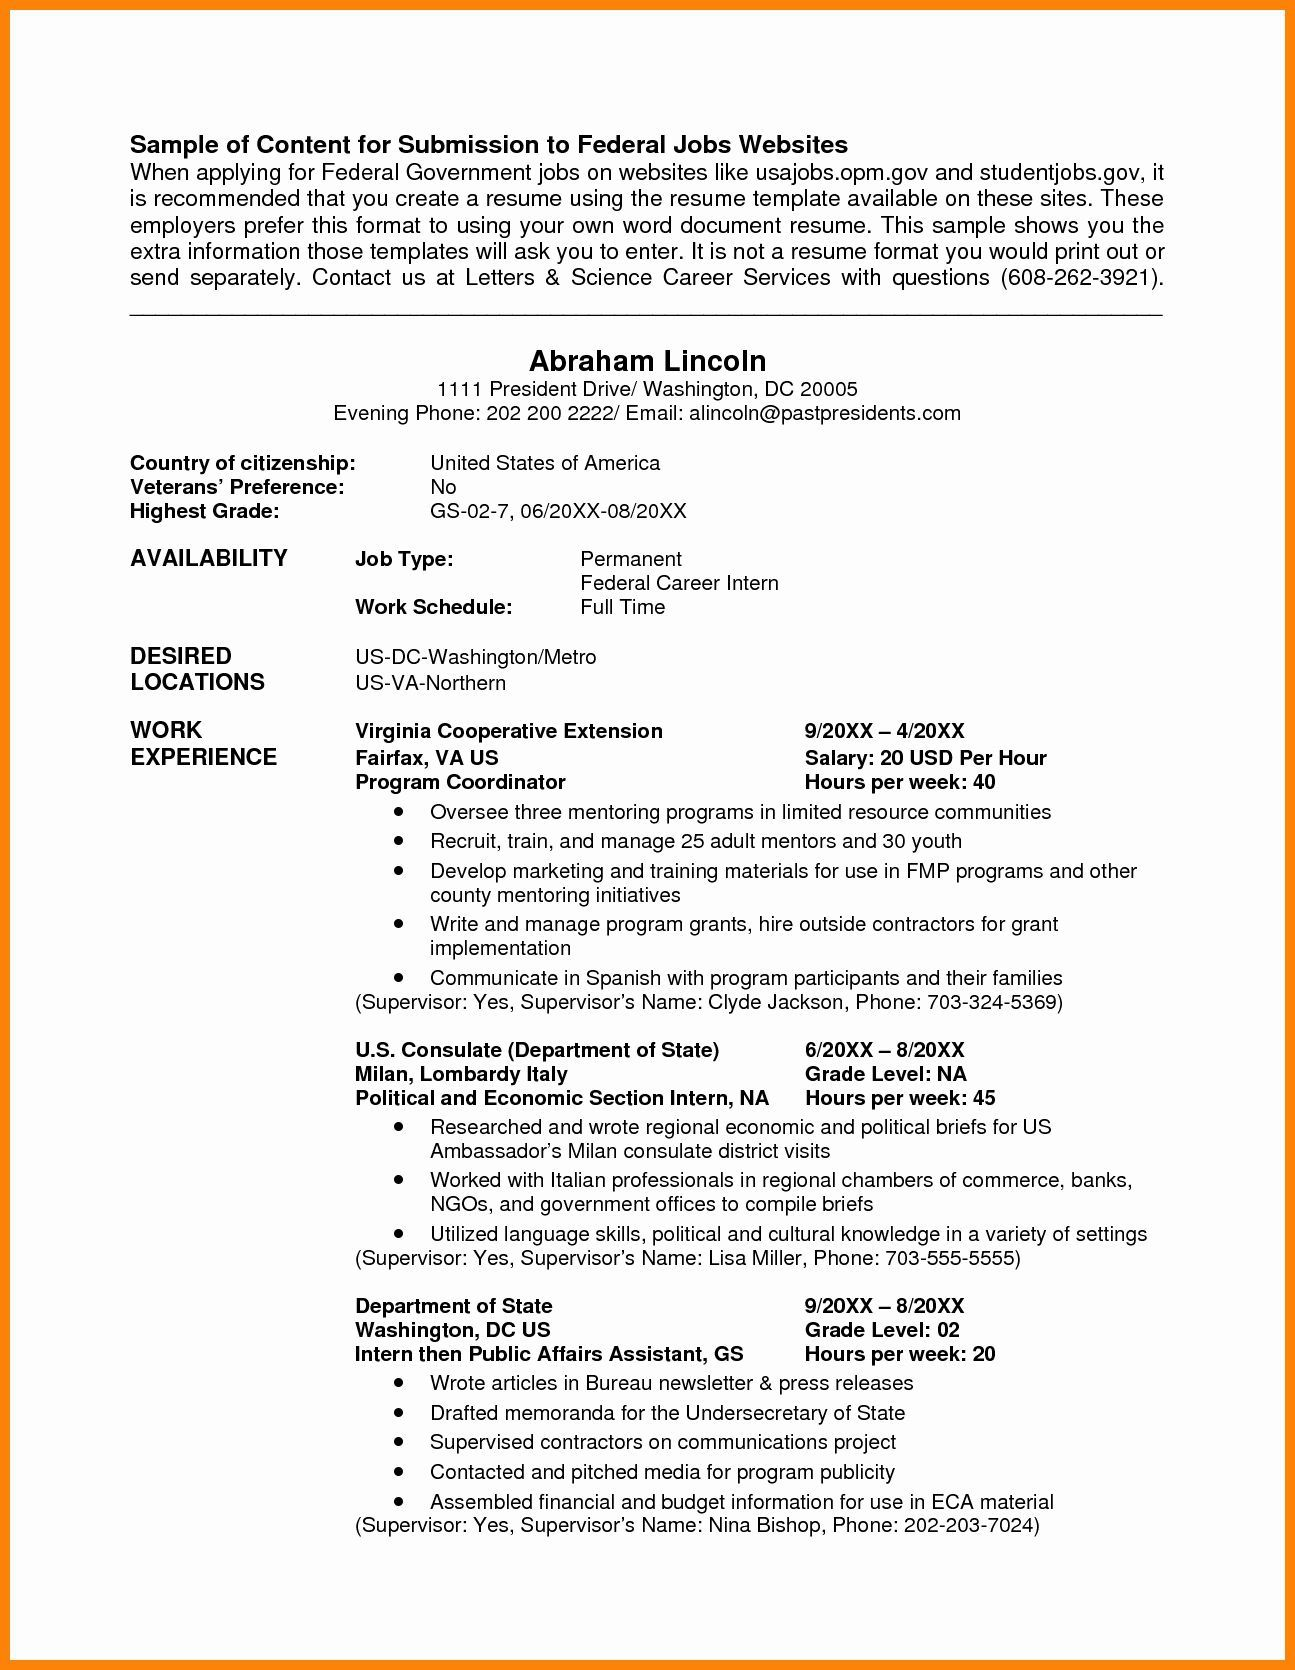 004 Incredible Usa Job Resume Template High Def  Builder Usajob FederalFull